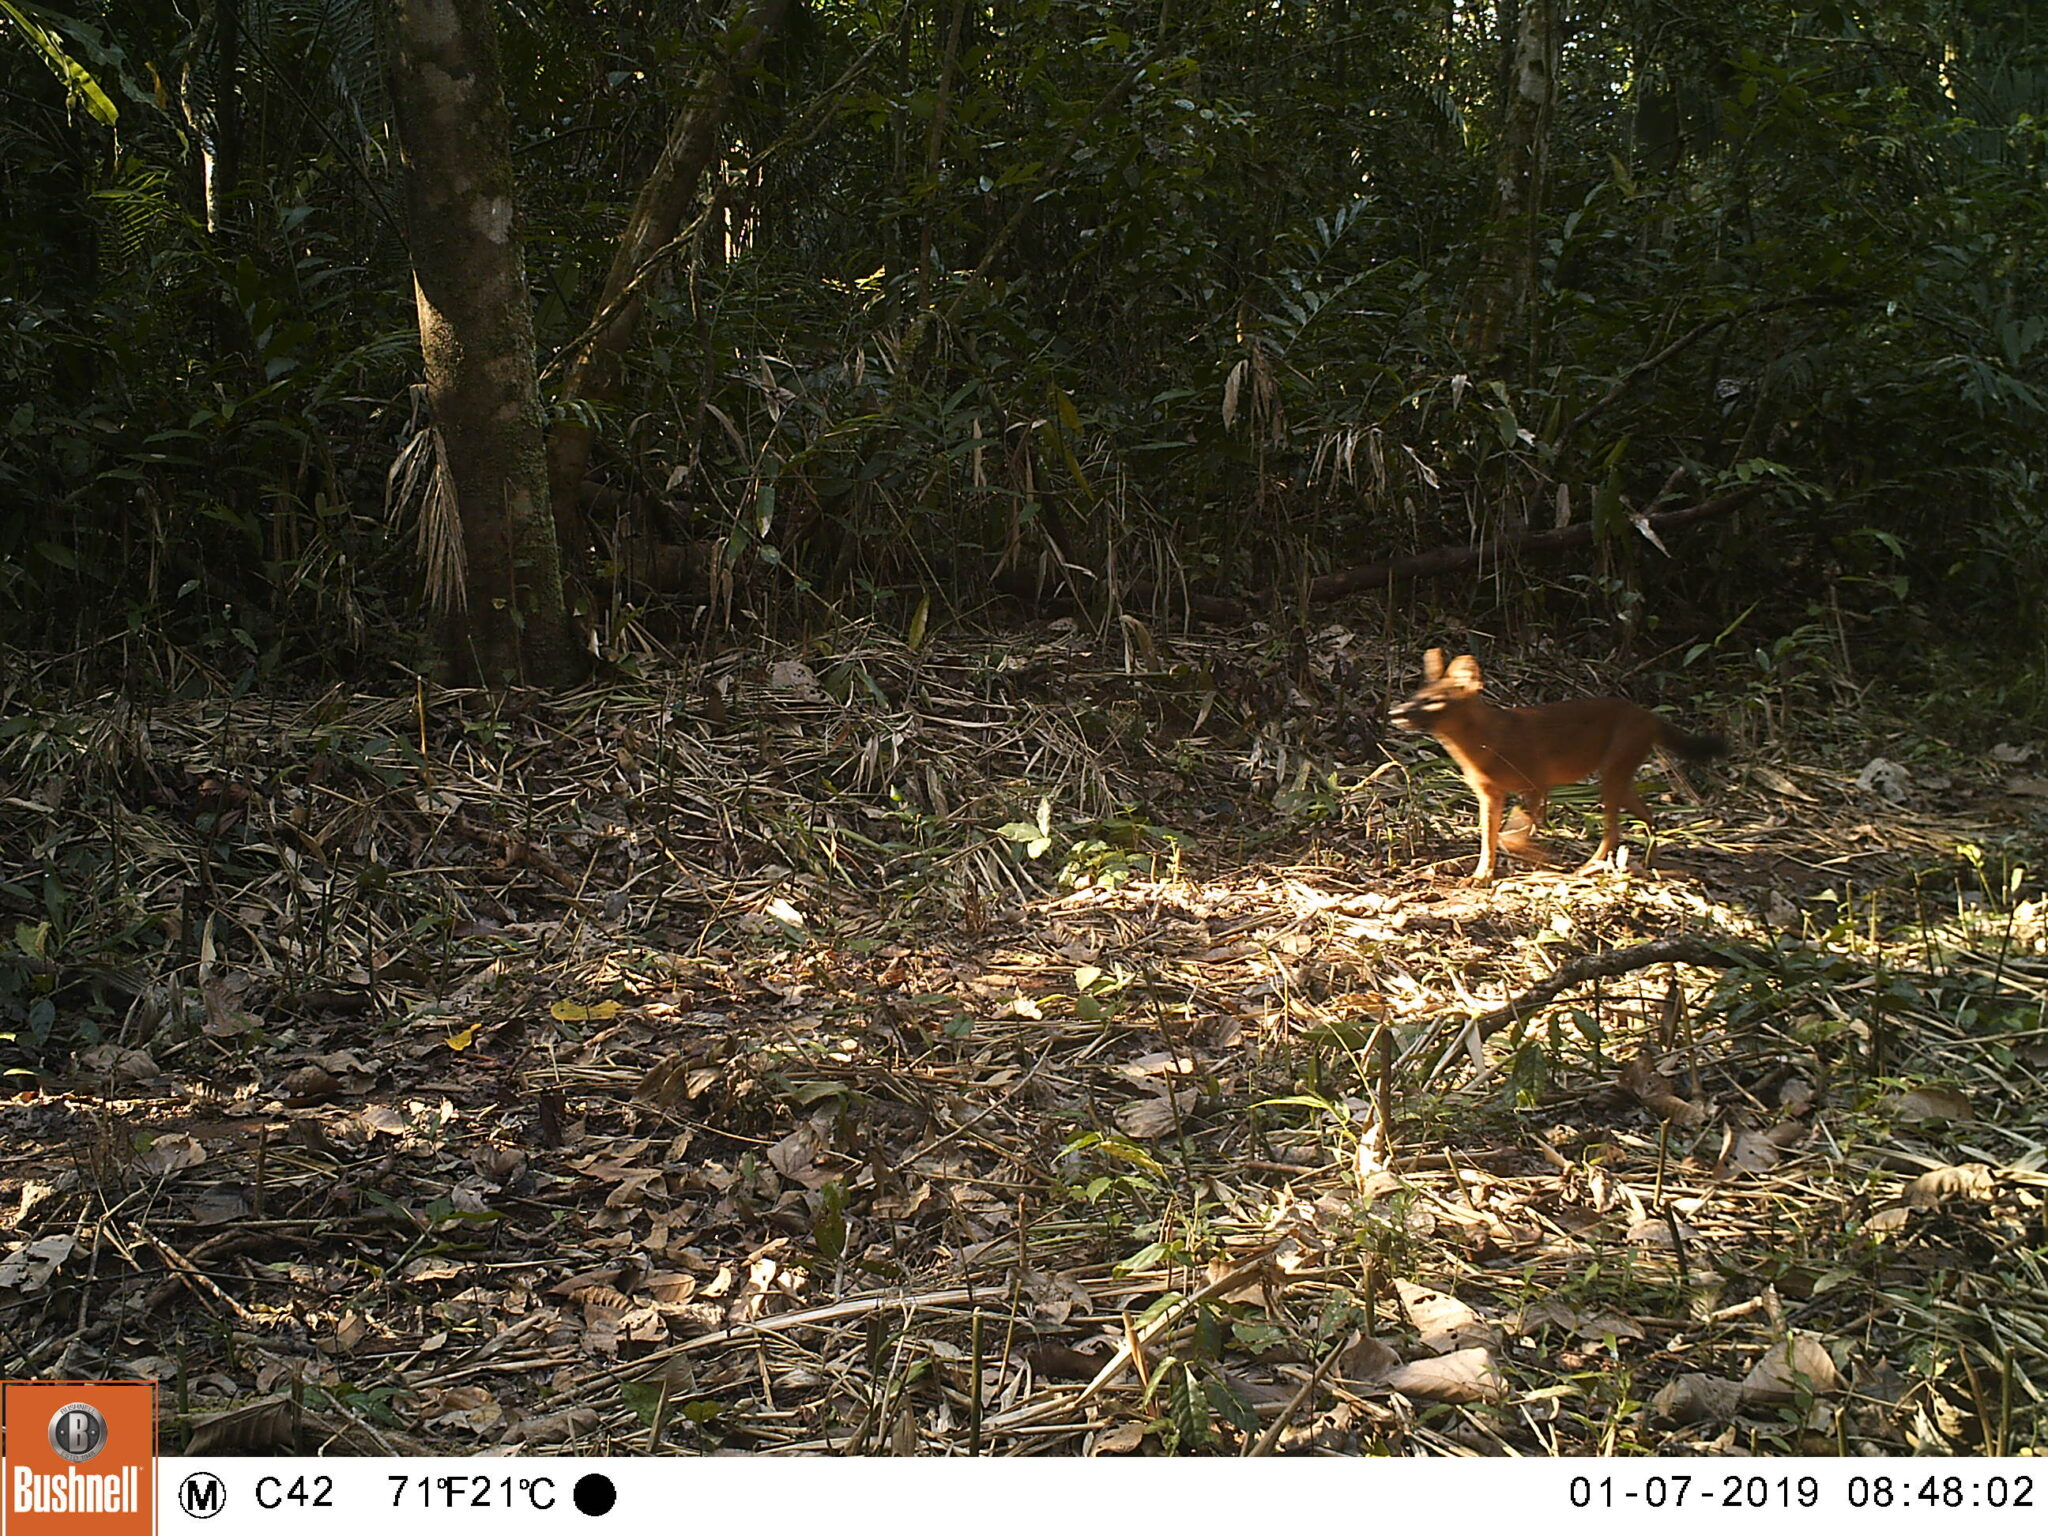 dhole Endangered dholes in the Cardamom Rainforest – VIDEO Dhole in Cardamom Rainforest Camera trap